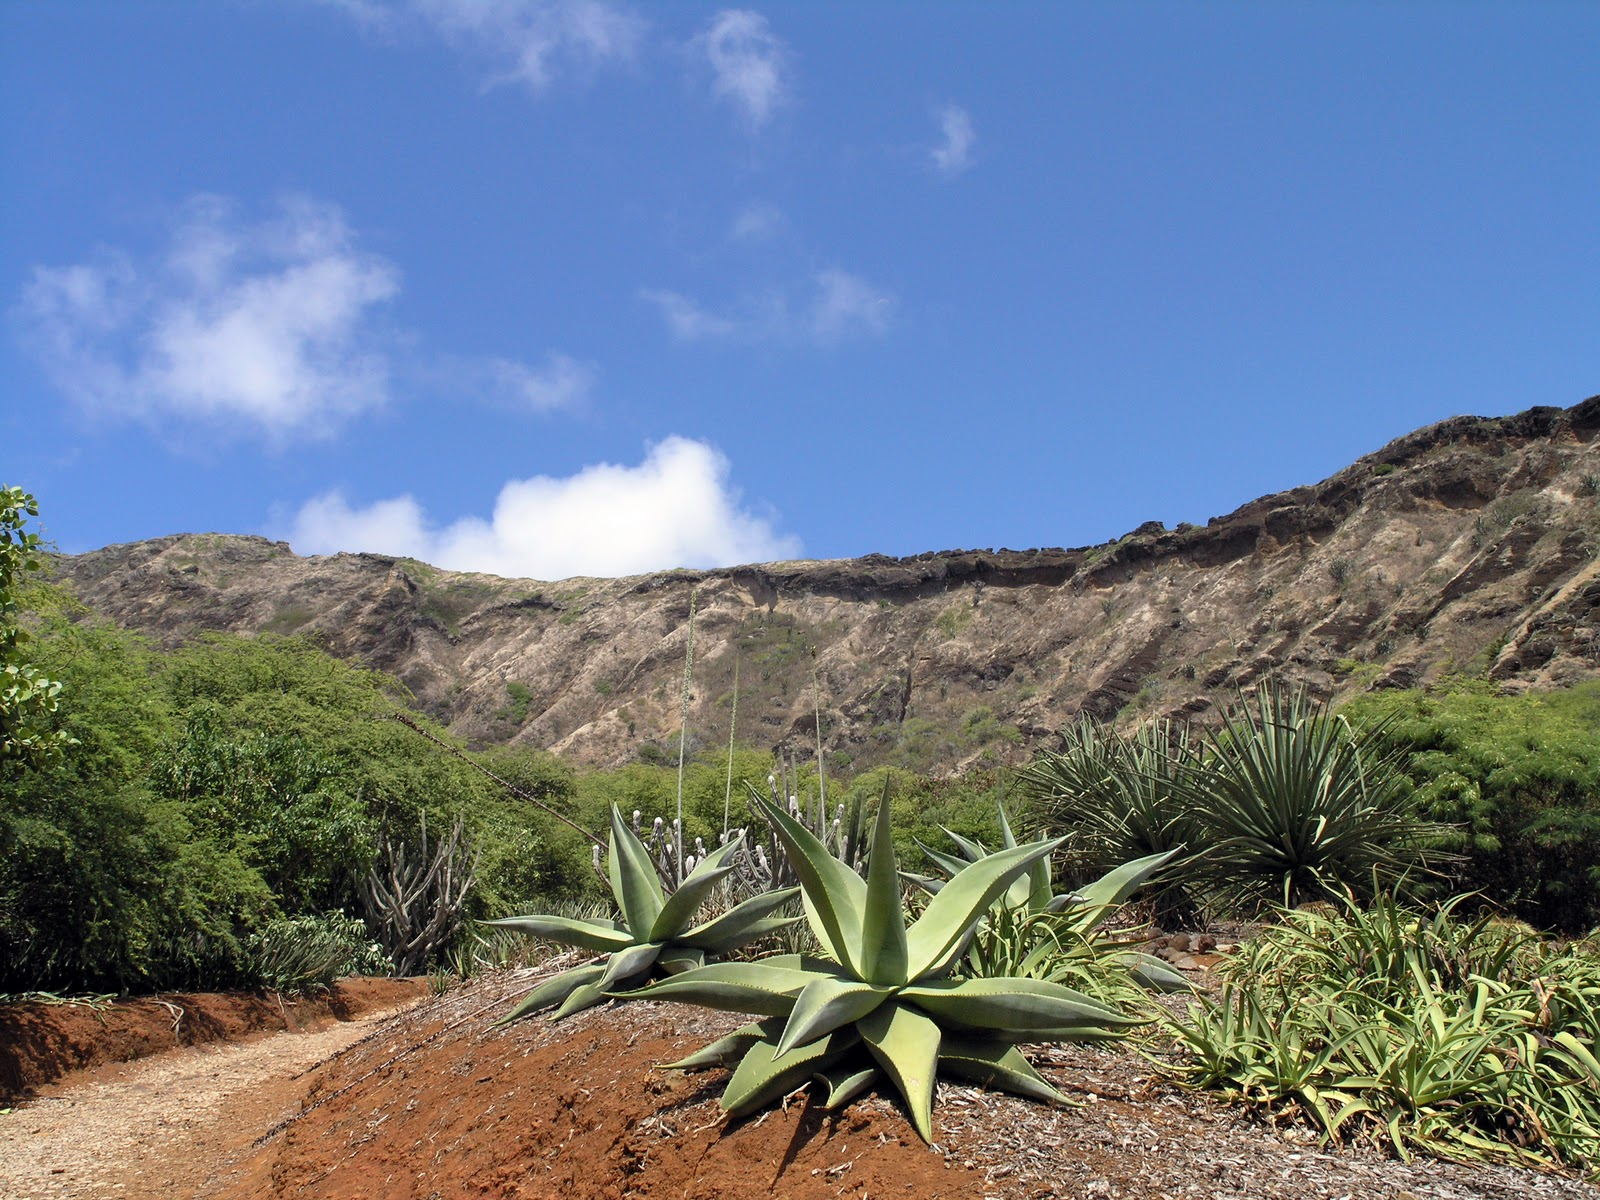 The Hot, Dry Climate Here Makes This Garden The Ideal Location For The Dry  Land Collections Of The Honolulu Botanical Gardens. The Garden Features  African ...